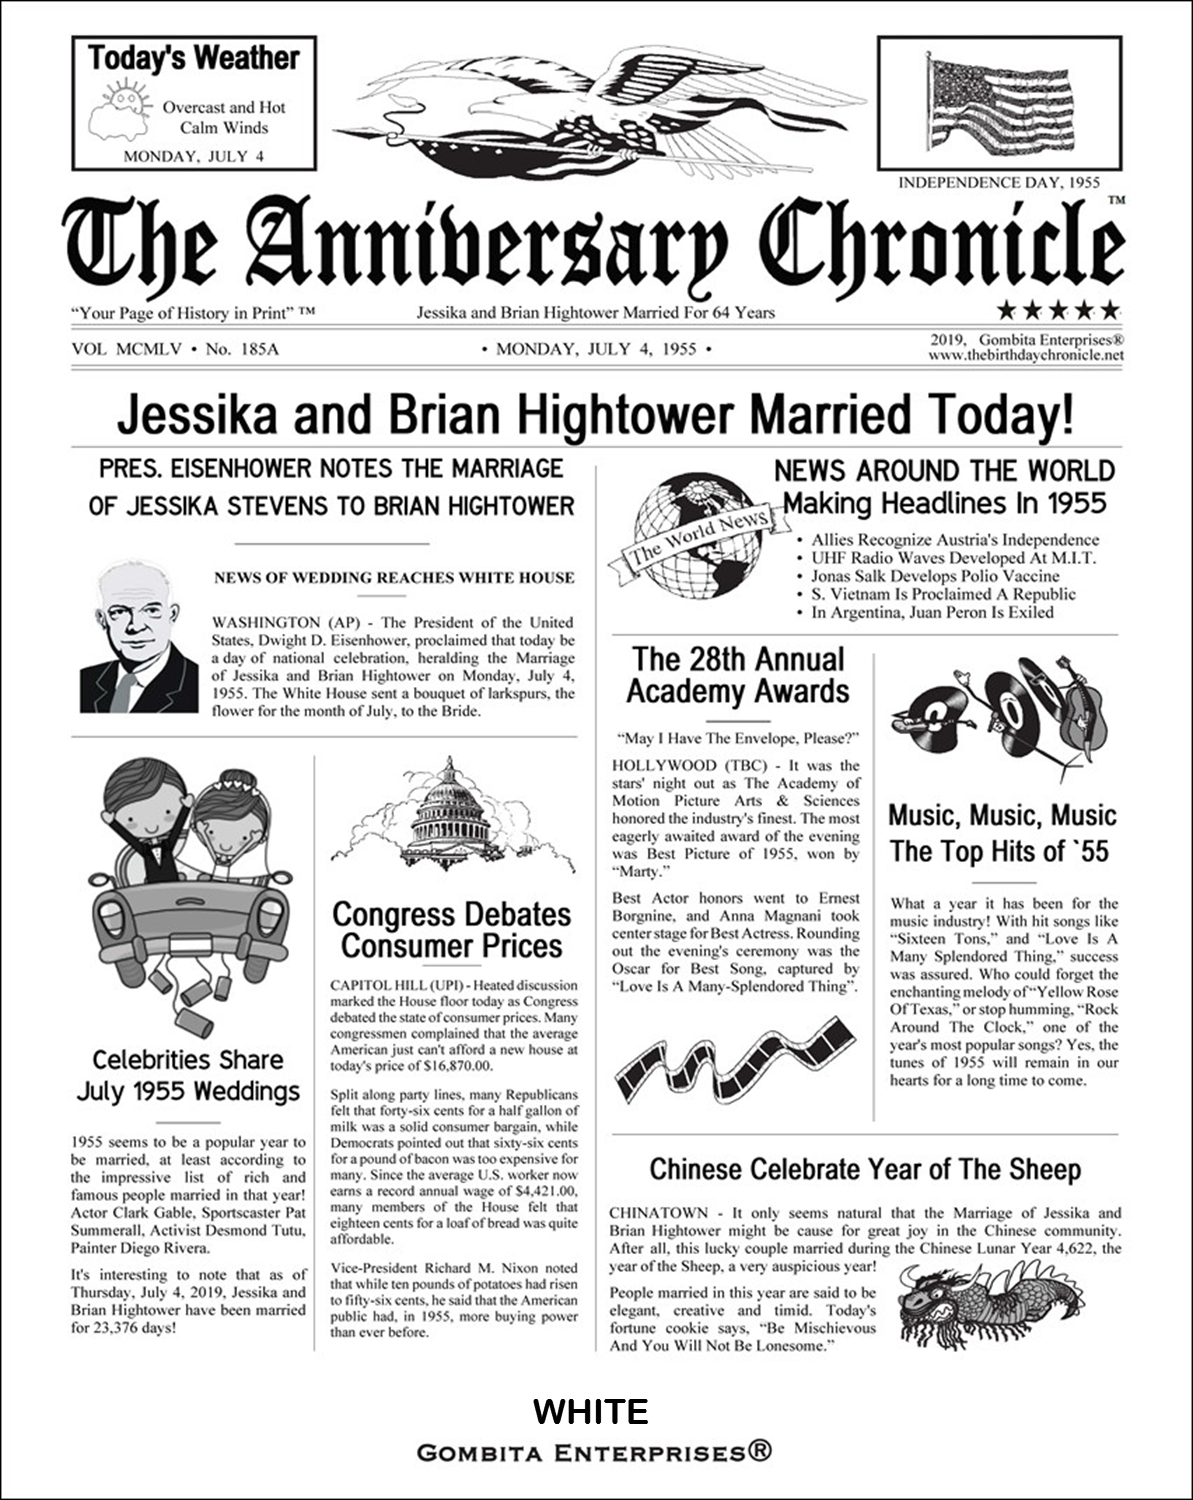 8.5 x 11 Inch By Mail - The Anniversary Chronicle